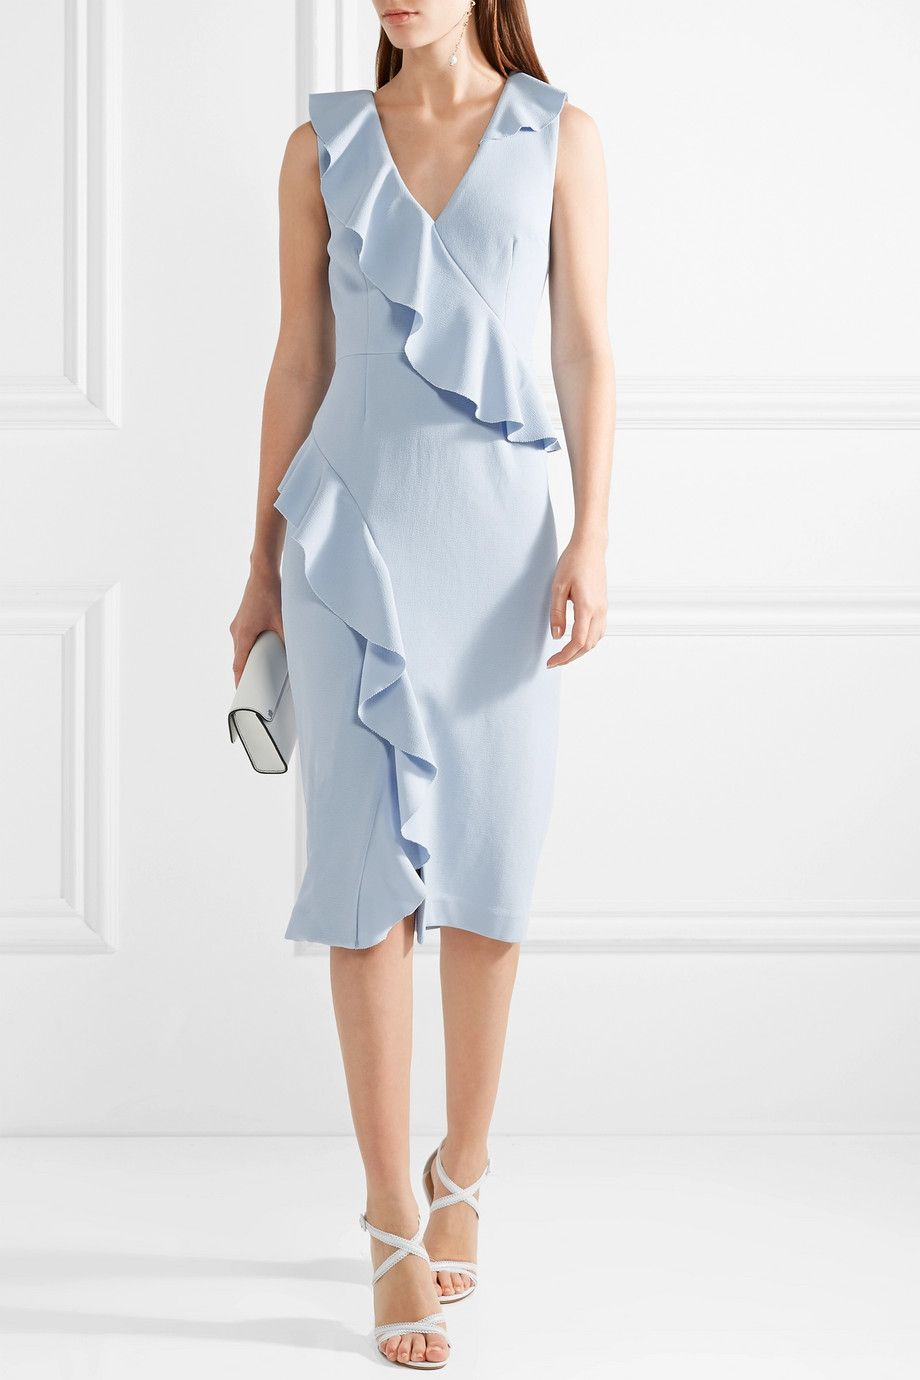 Sale Big Discount Sylvette Ruffle-trimmed Crepe Dress - Sky blue Rebecca Vallance Factory Outlet For Sale Discount Aaa bo1bKdJ2